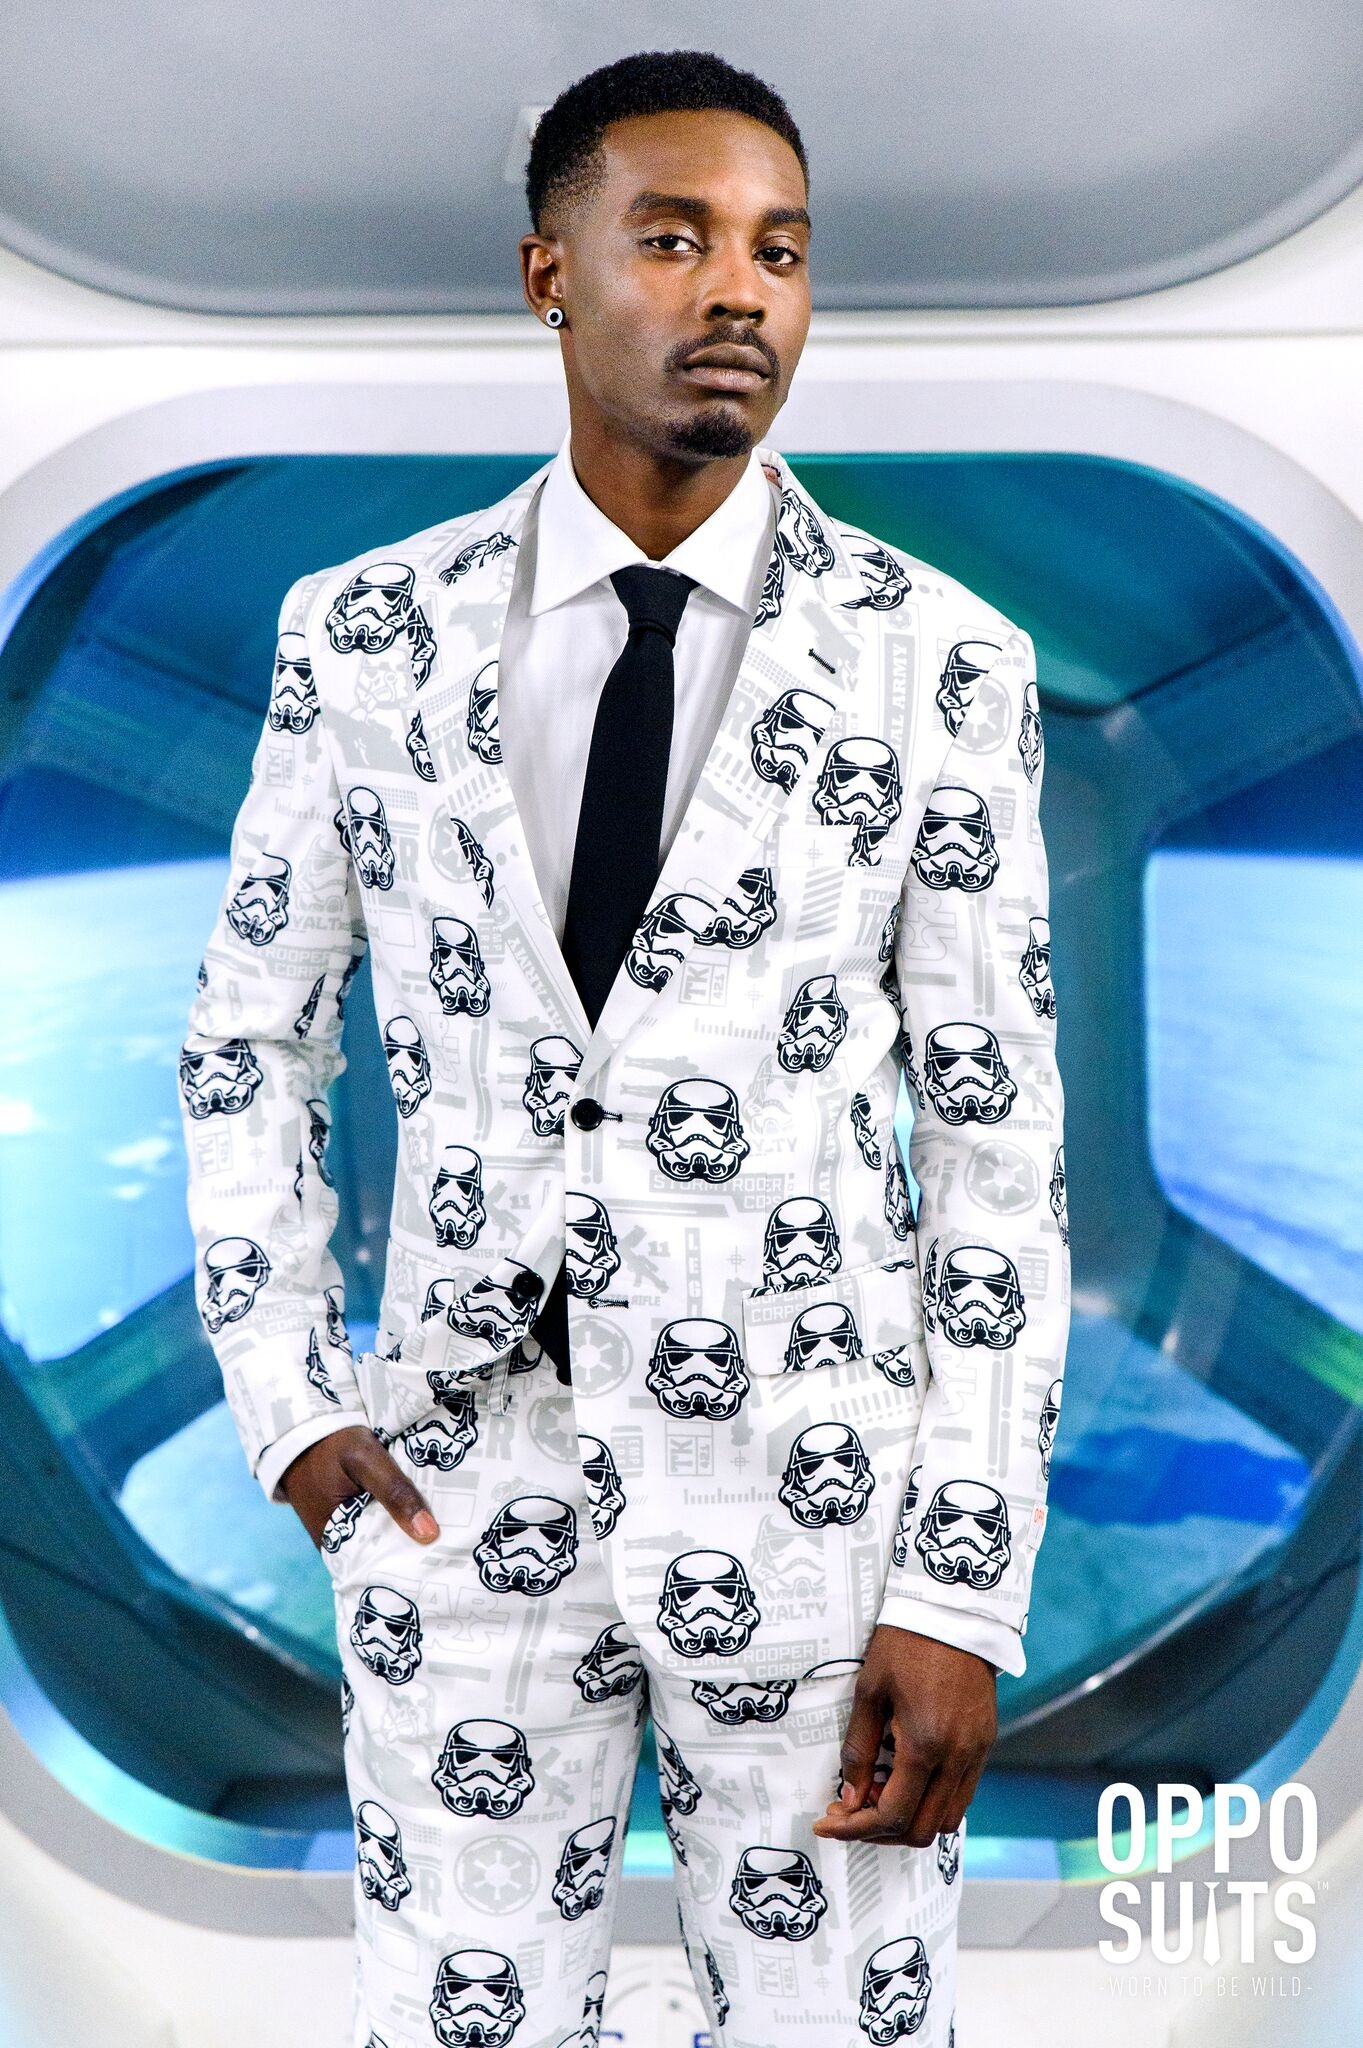 opposuits Oppo suits: stormtrooper fra temashop.dk